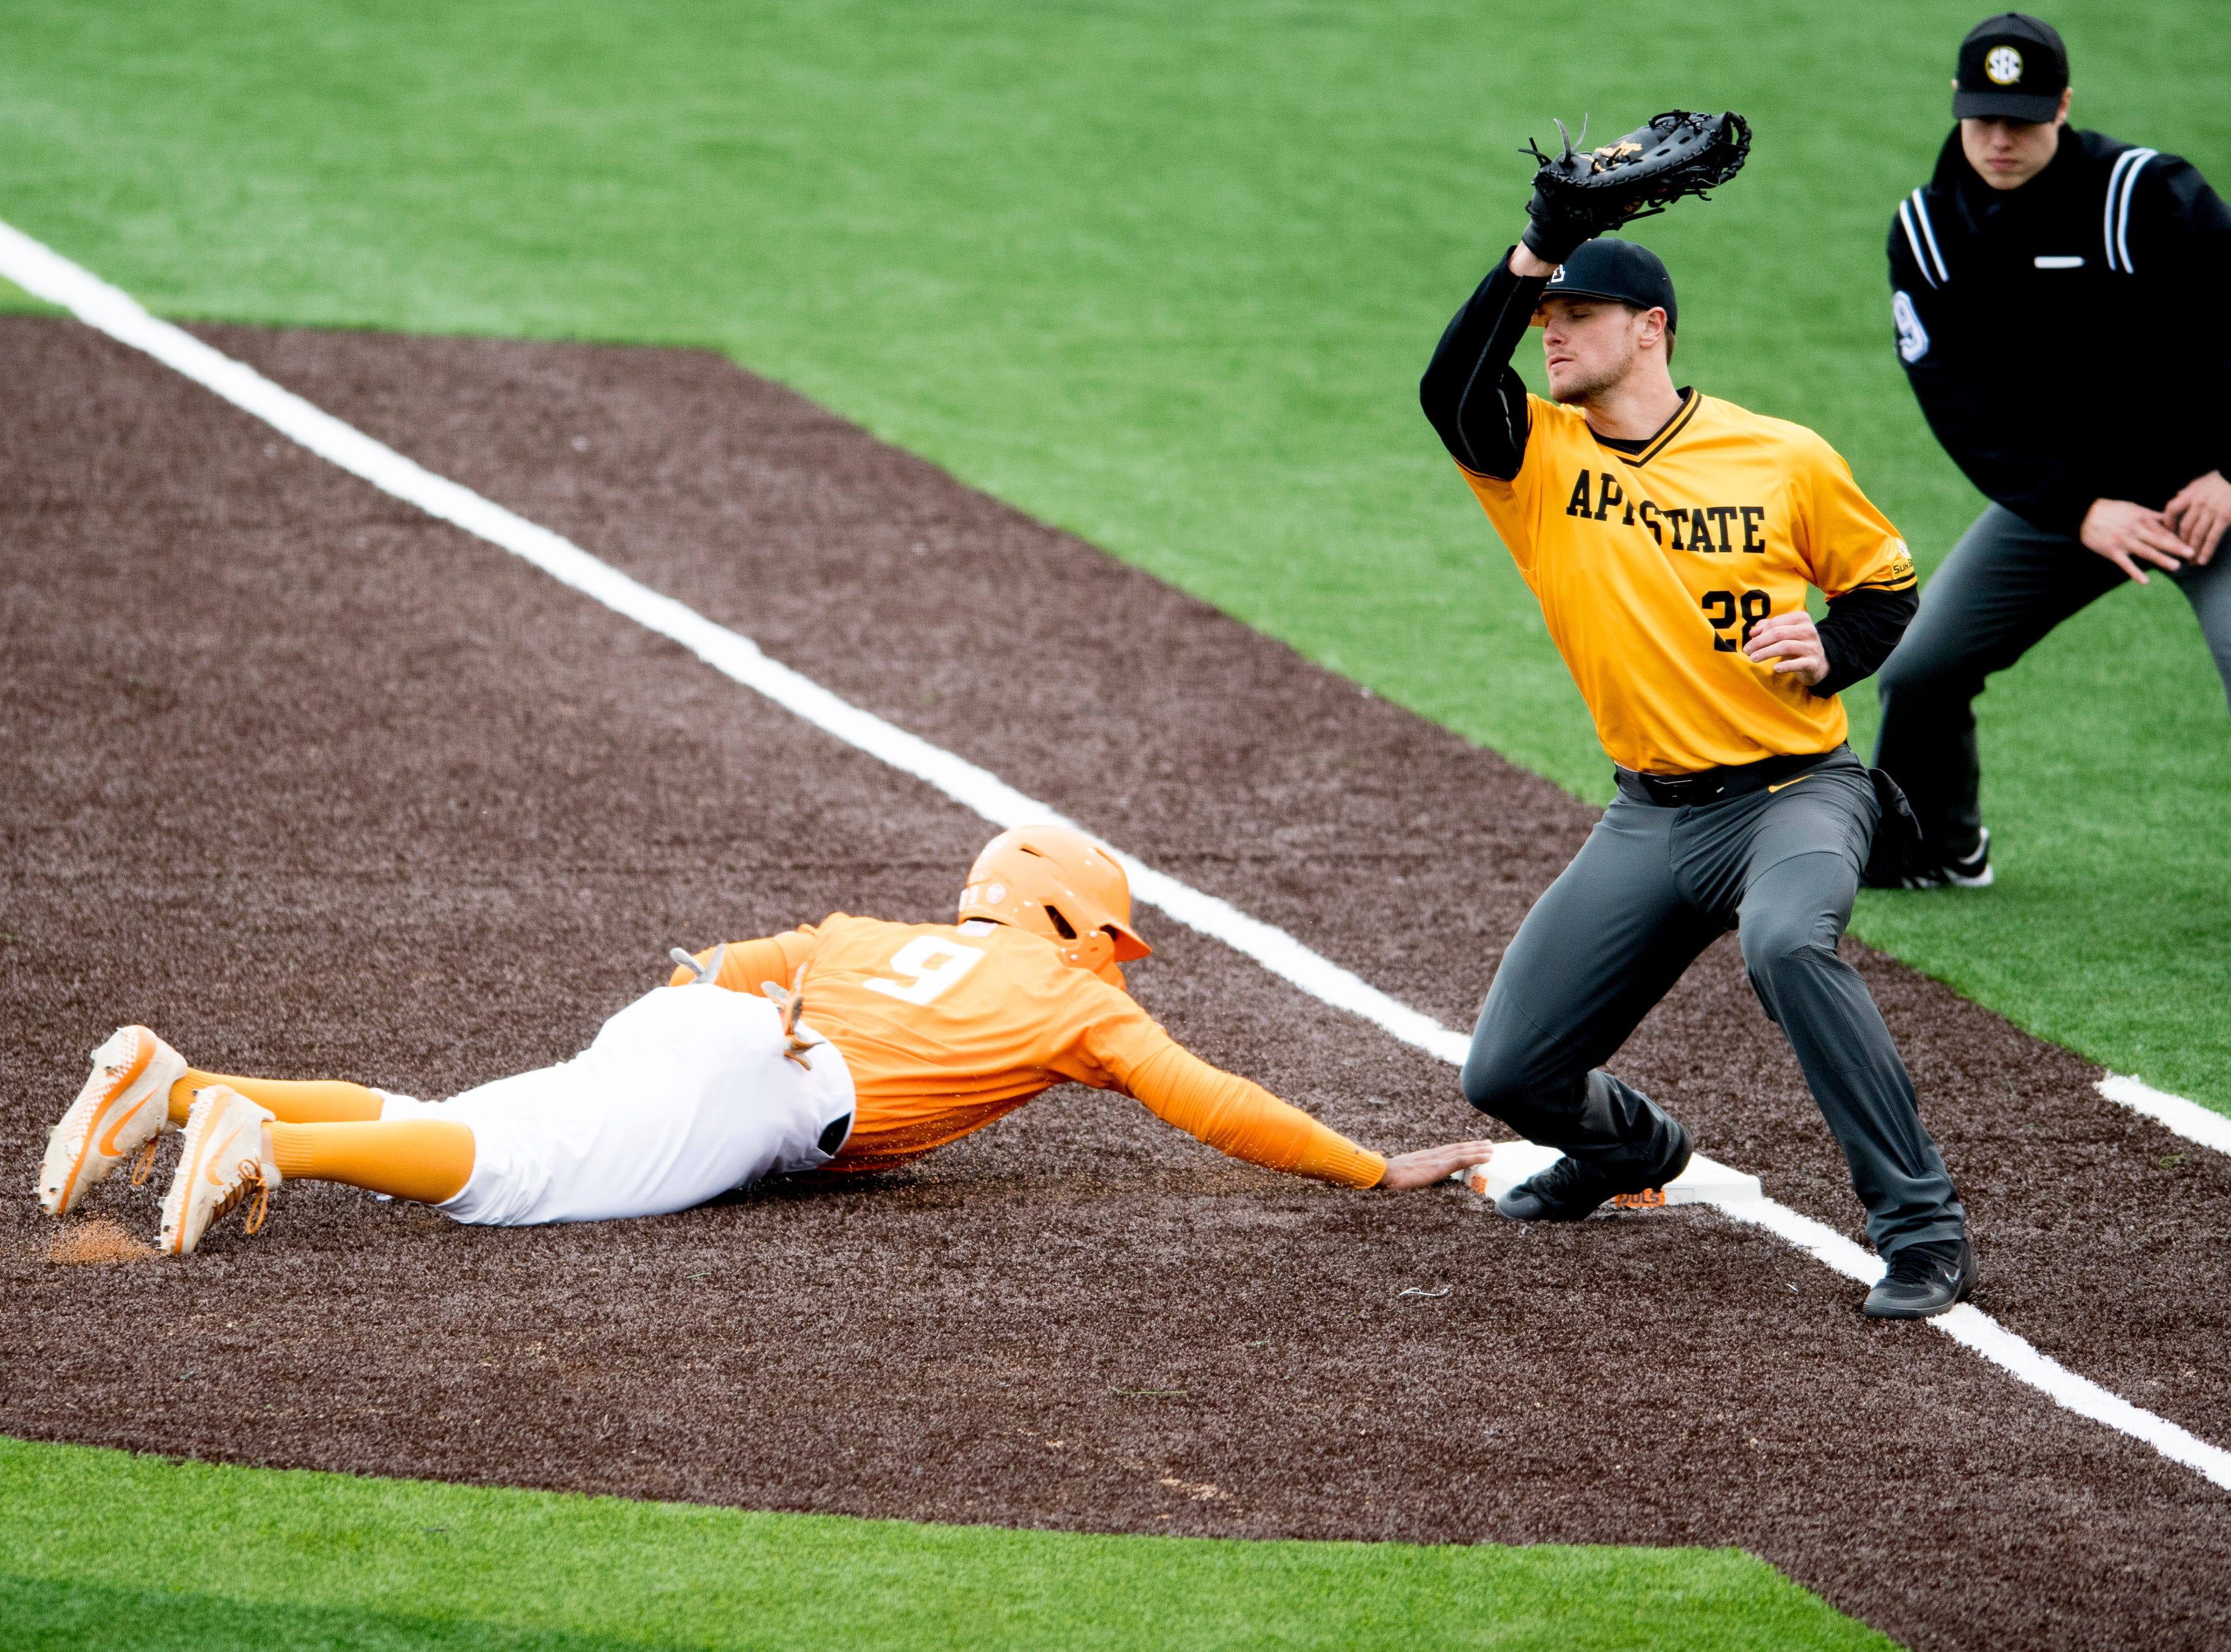 Tennessee outfielder Justin Ammons (9) slides safely into first as Appalachian State's Robbie Young (28) tries to out him during a Tennessee baseball home opener game against Appalachian State at Lindsey Nelson Stadium in Knoxville, Tennessee on Saturday, February 16, 2019.